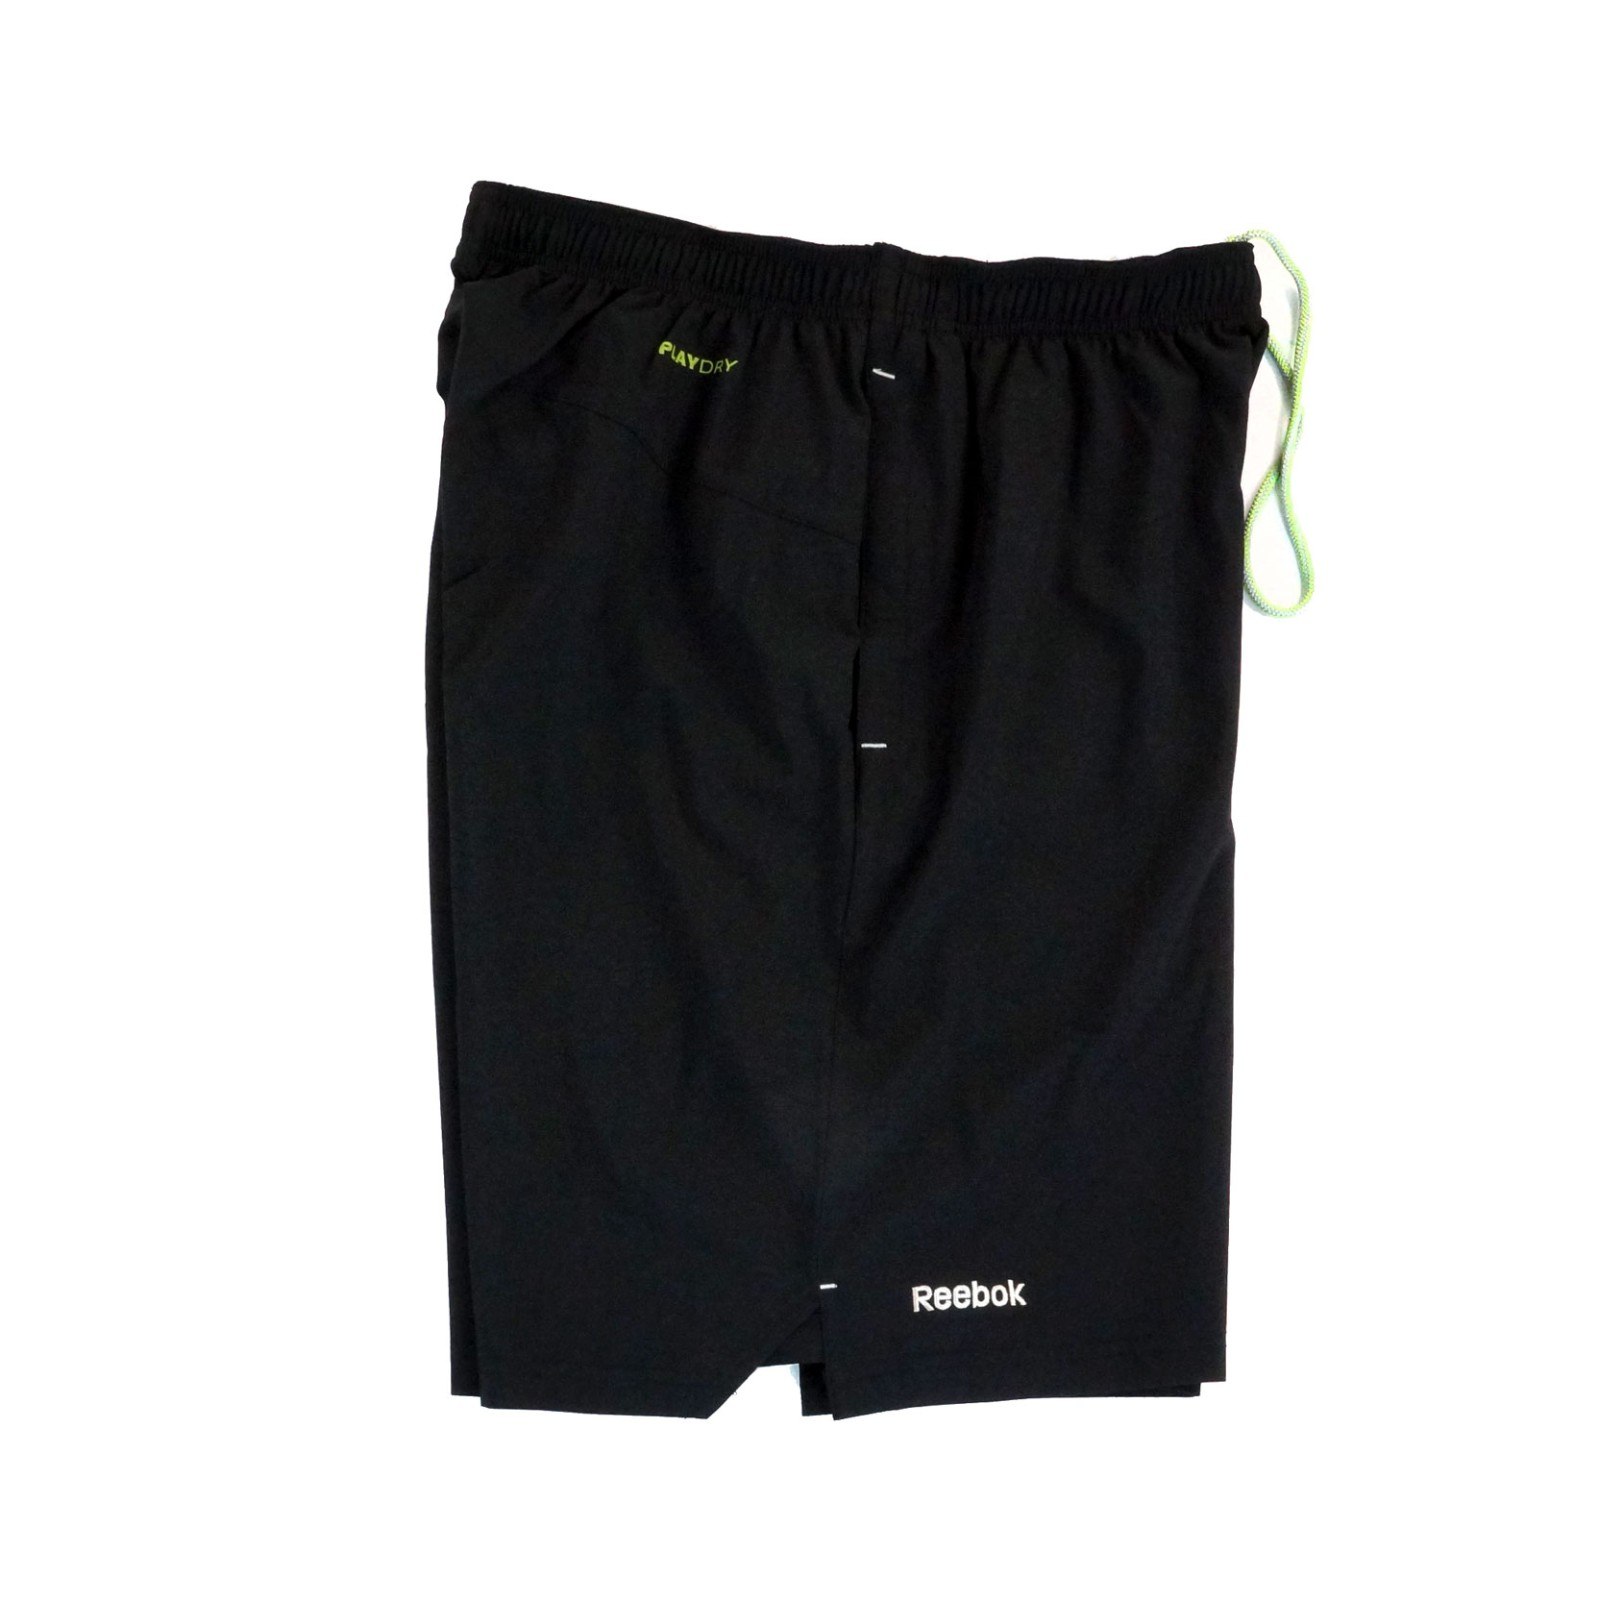 NHL-Reebok-Center-Ice-TNT-PlayDry-Performance-Black-Team-Shorts-Collection-Men-039-s